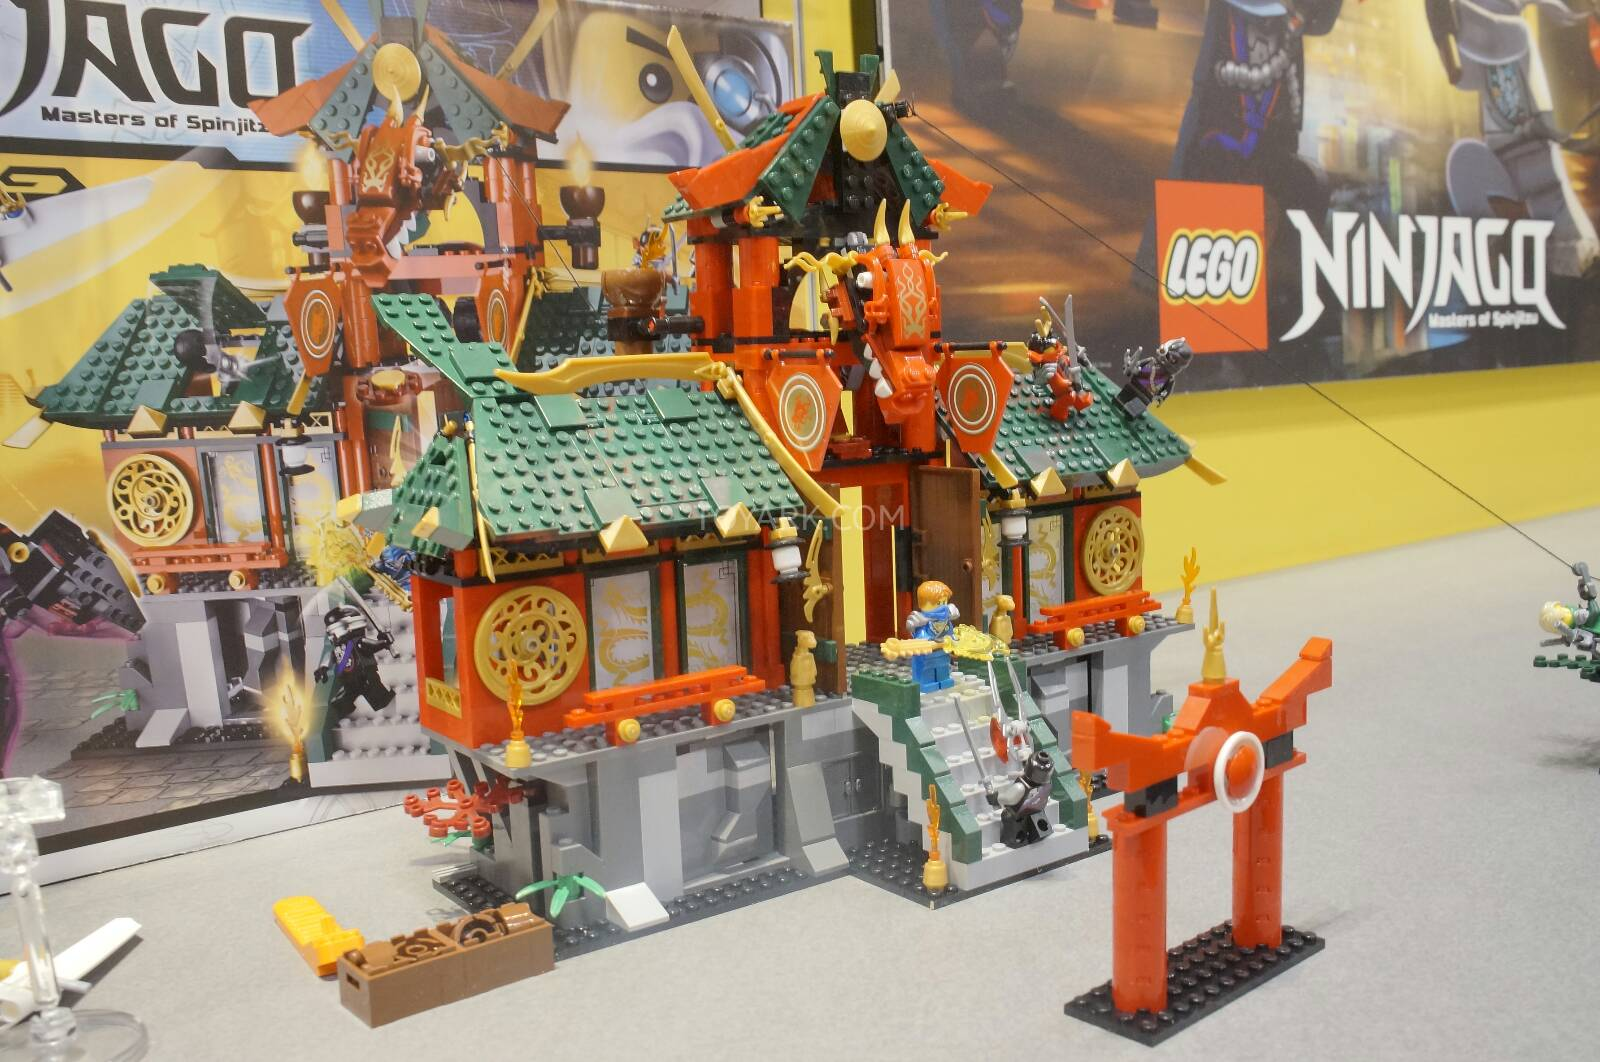 Toy-Fair-2014-LEGO-Ninjago-017.jpg